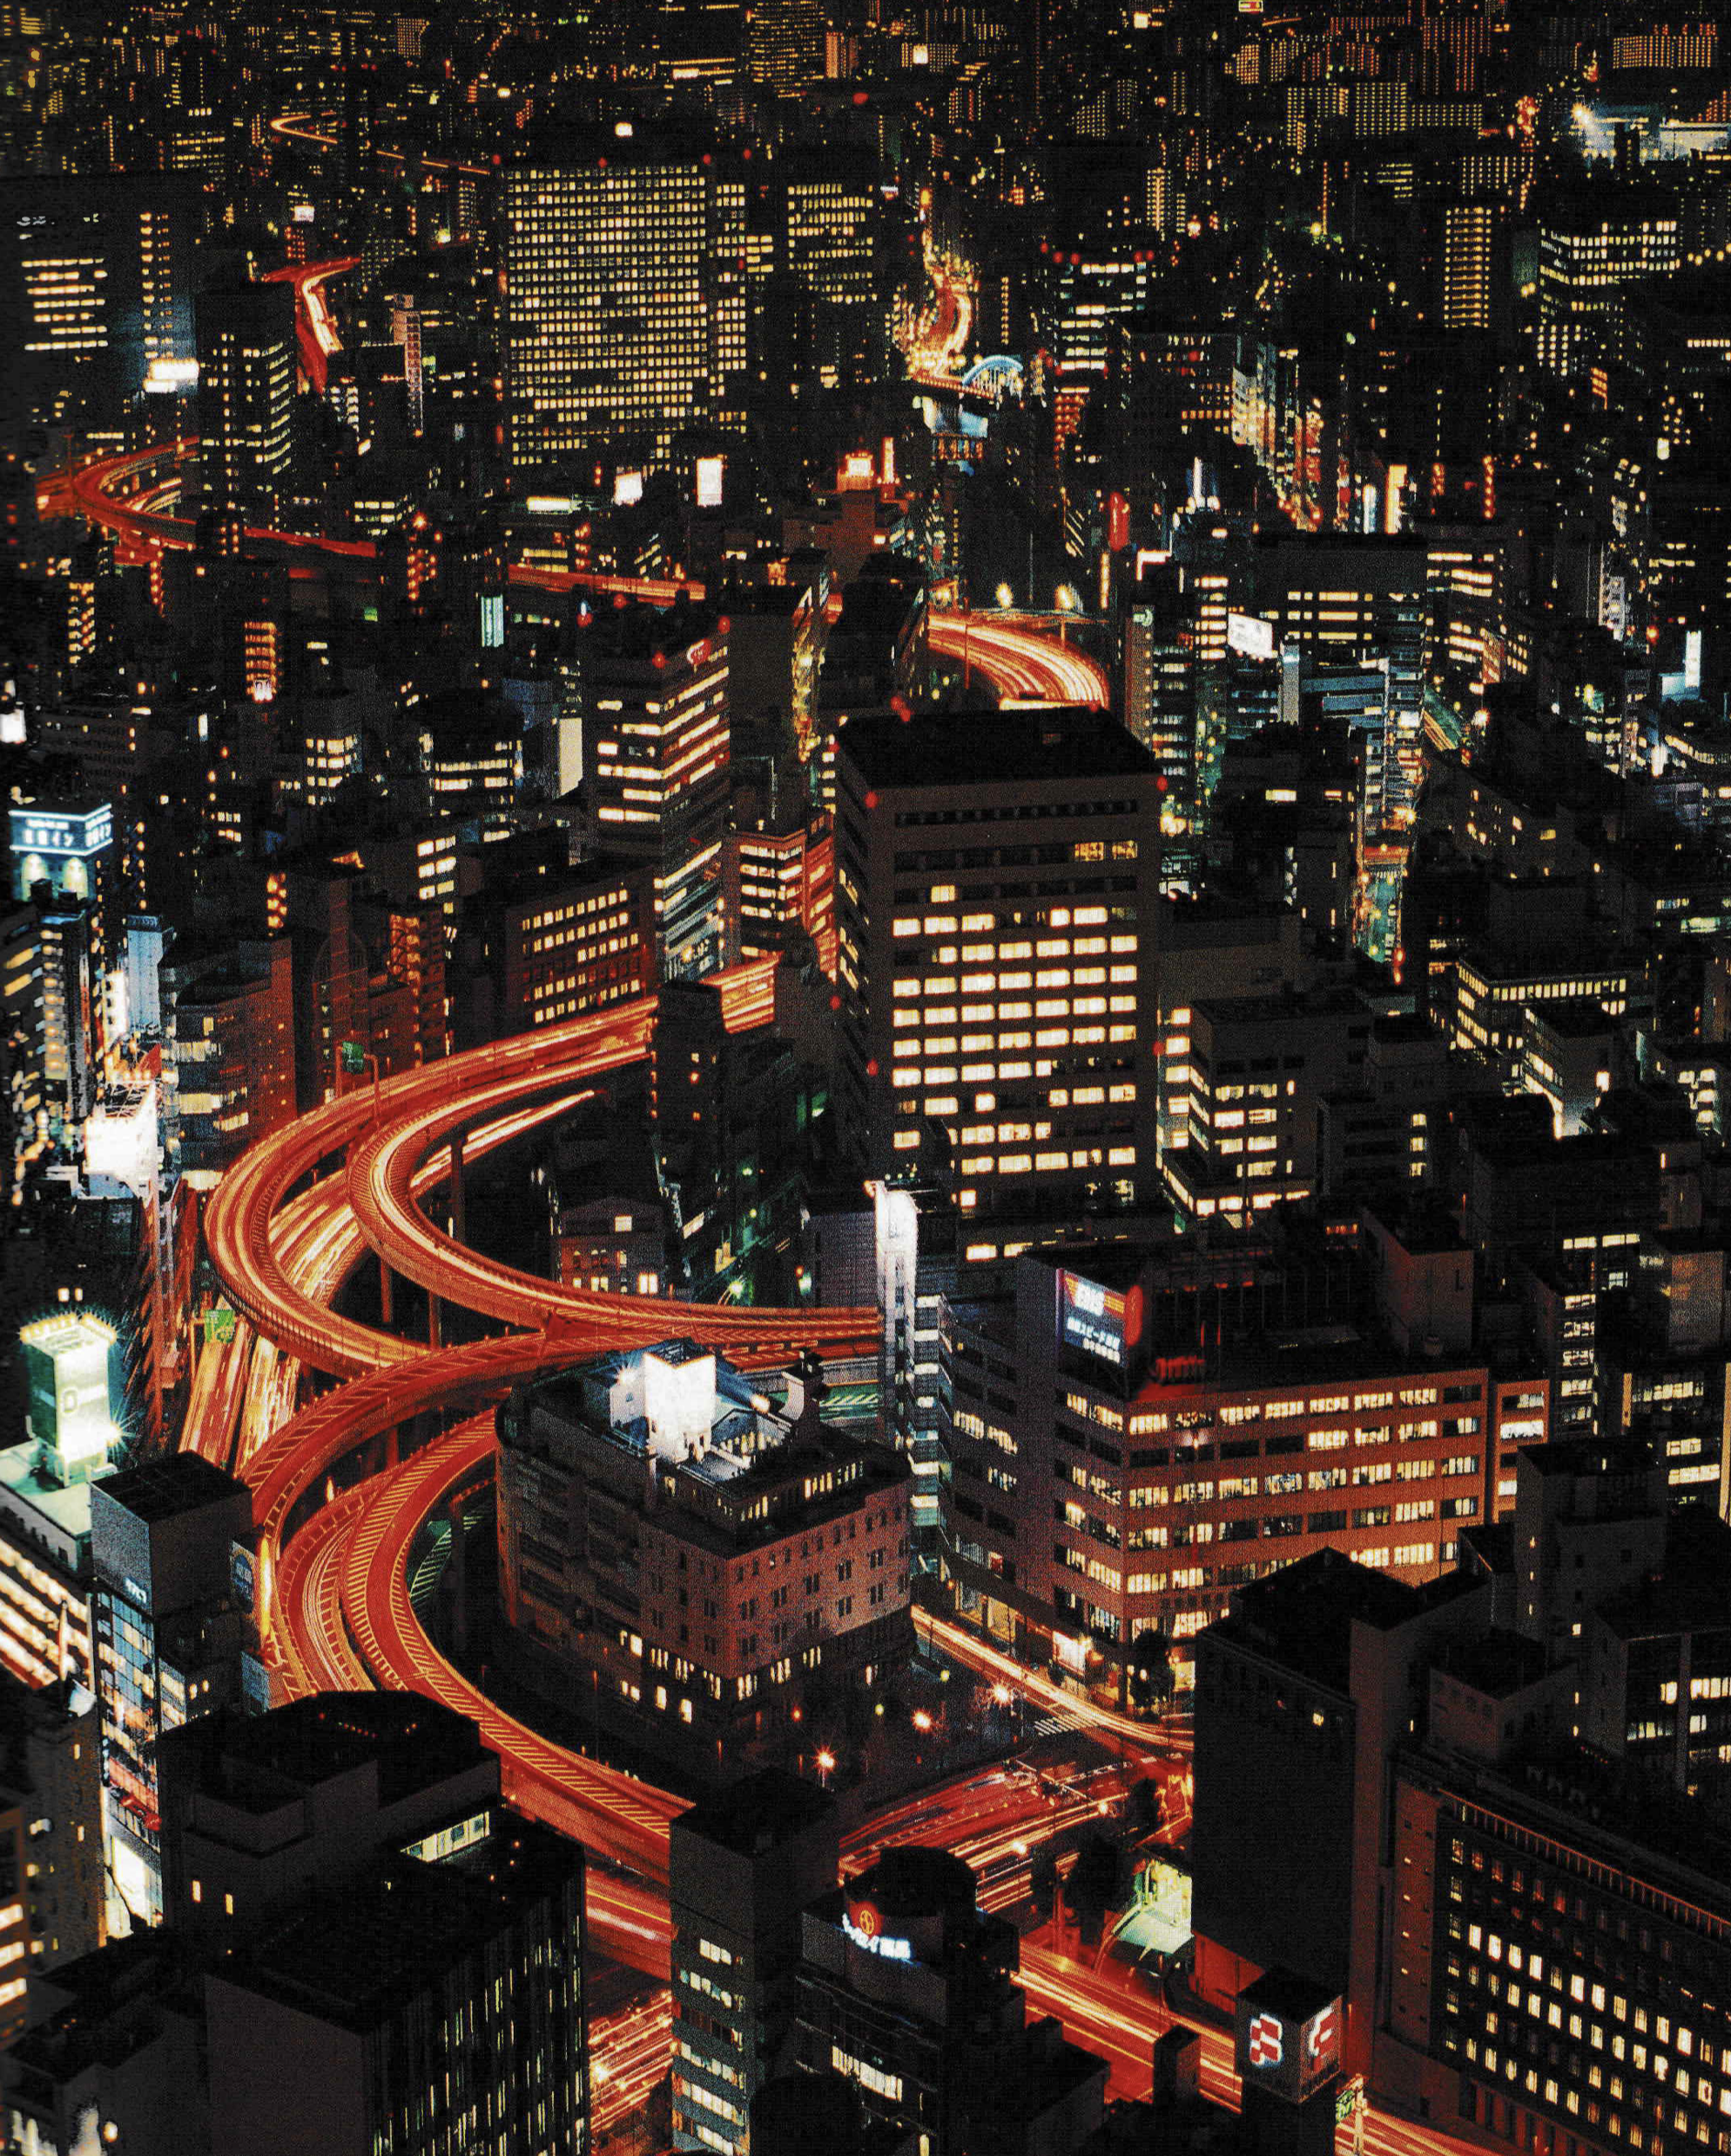 Image of a cityscape at night